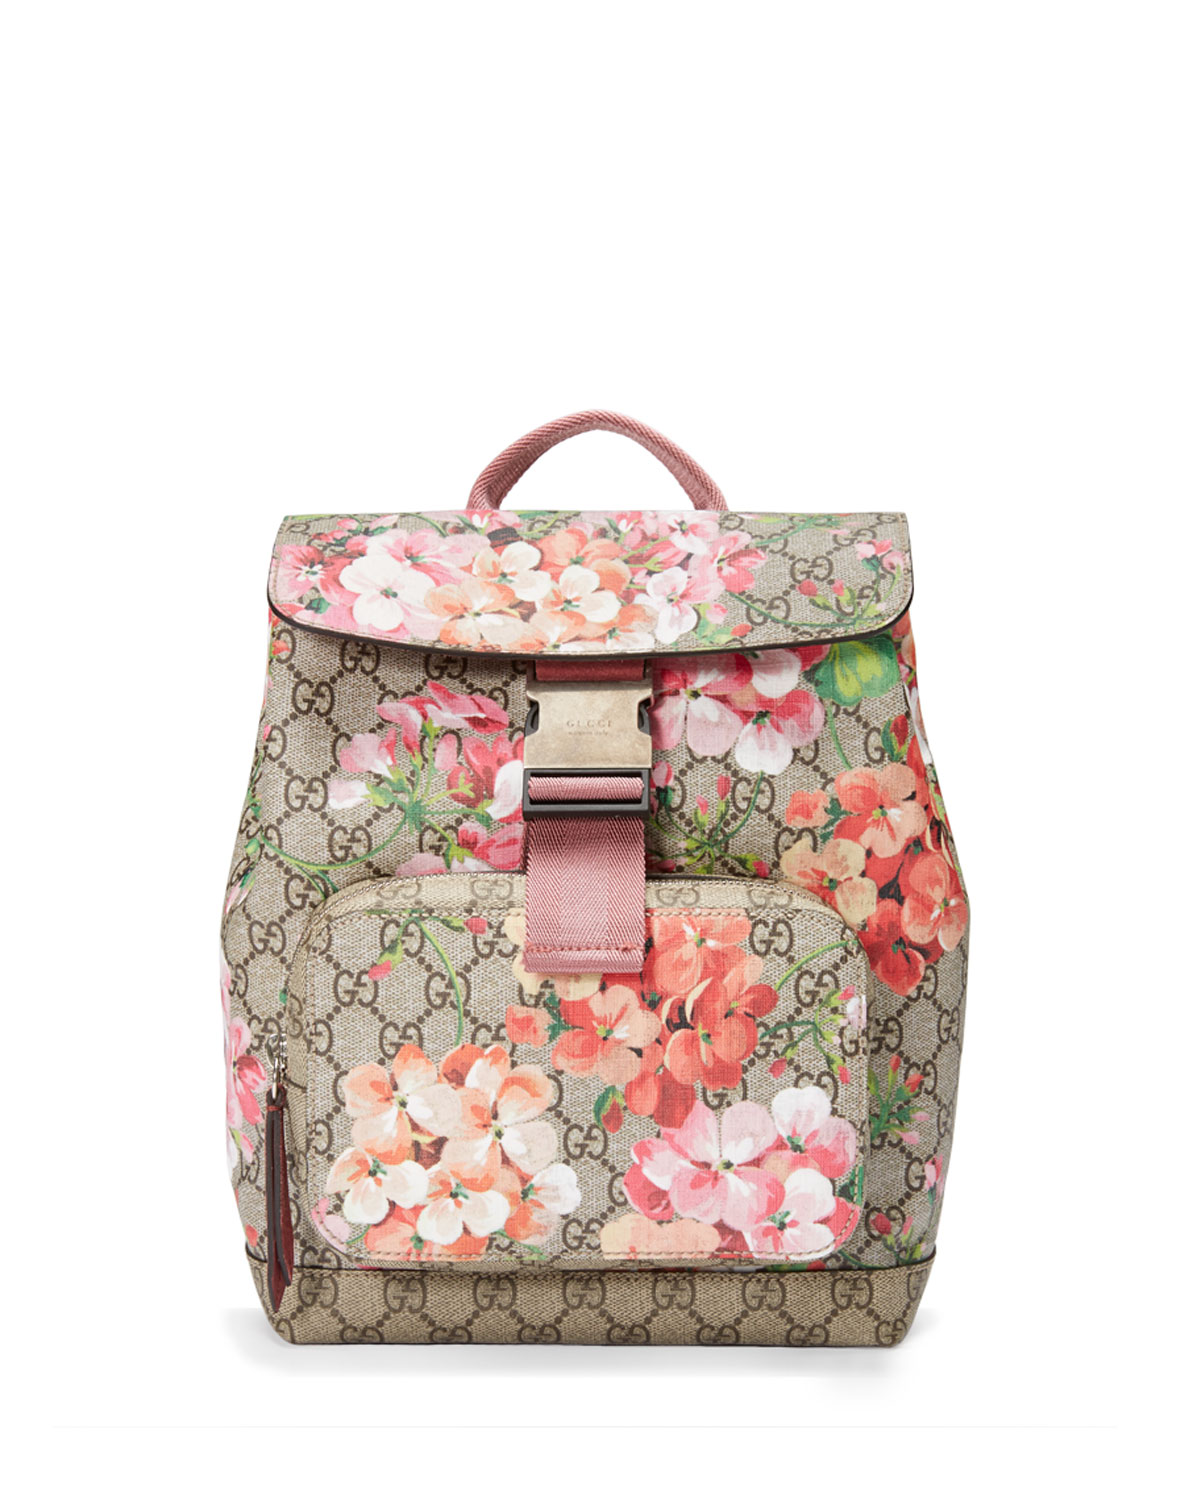 ff81fae92650 Gucci GG Blooms Small Backpack